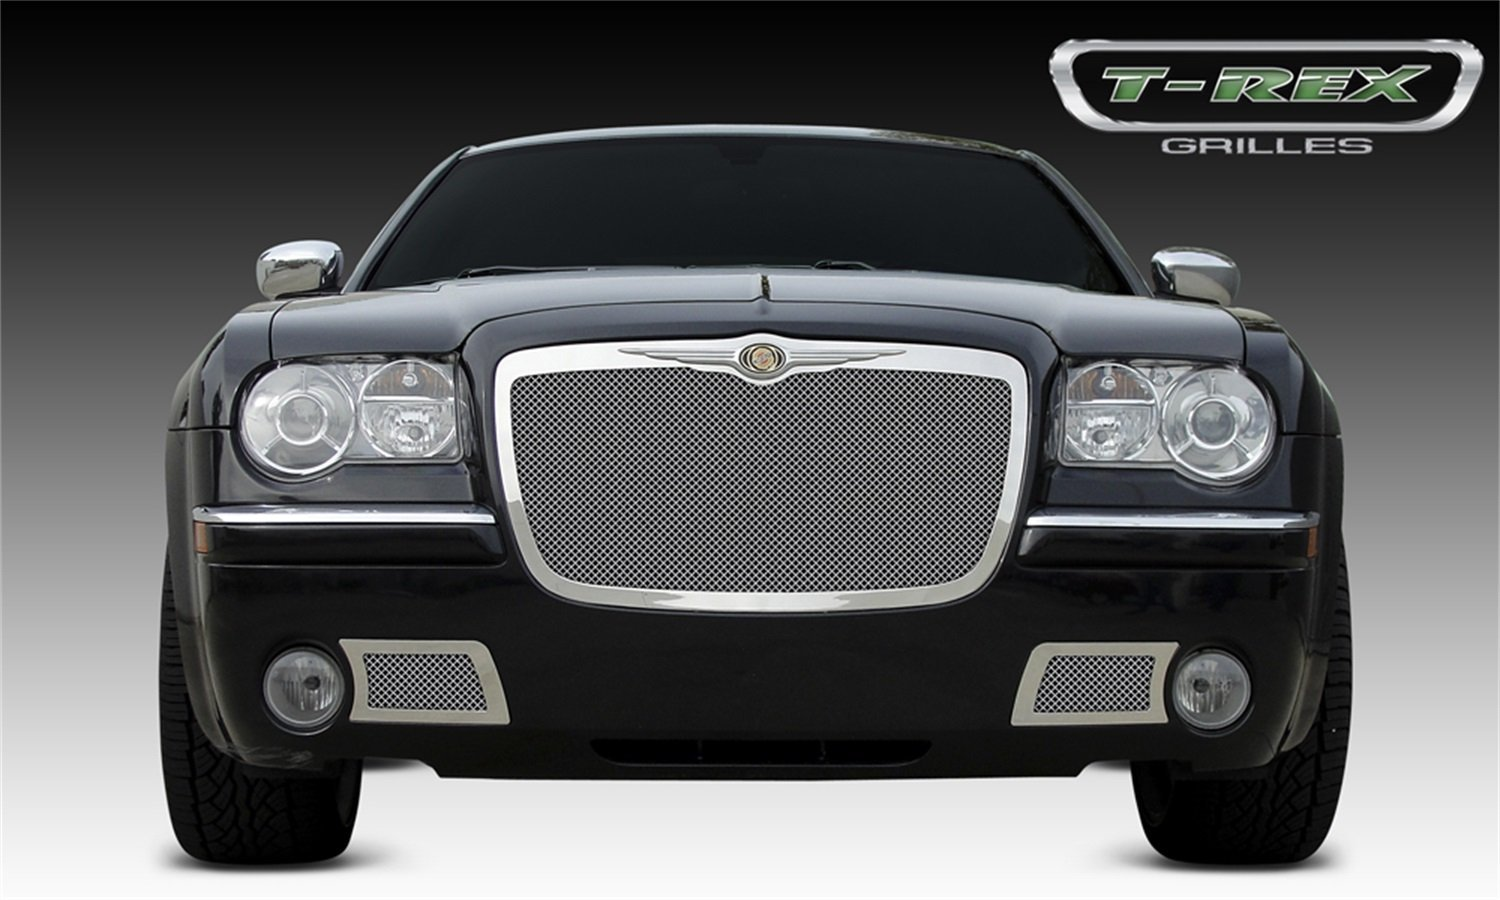 chrysler and safety options reviews original photo for features s page grill bentley review